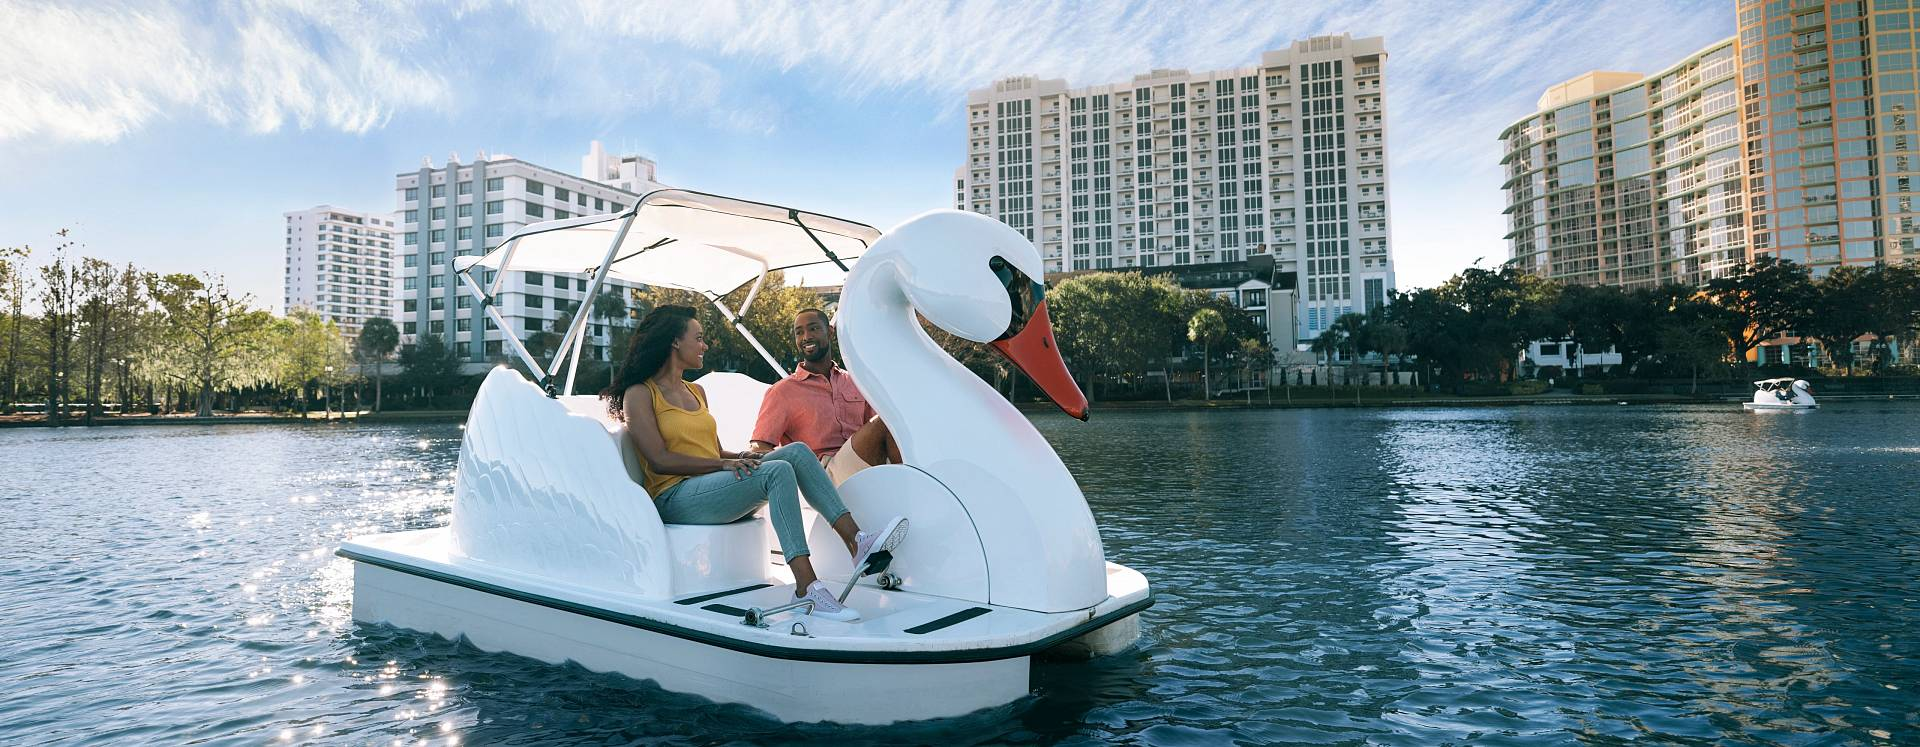 A couple enjoy a swan boat ride on Lake Eola in Orlando, Florida.